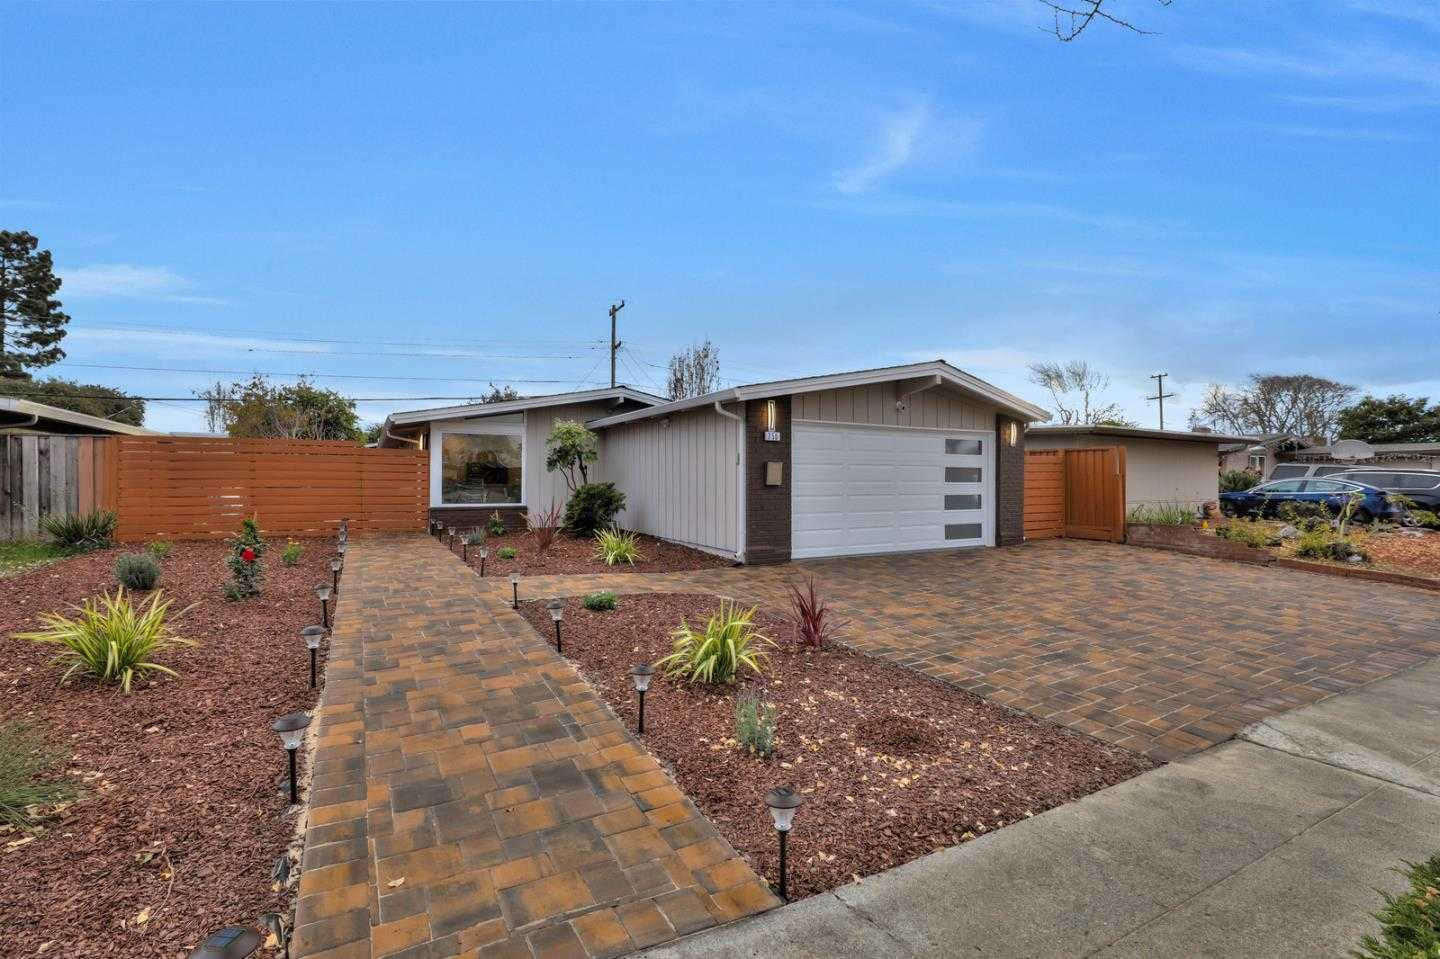 $1,348,000 - 3Br/2Ba -  for Sale in Sunnyvale